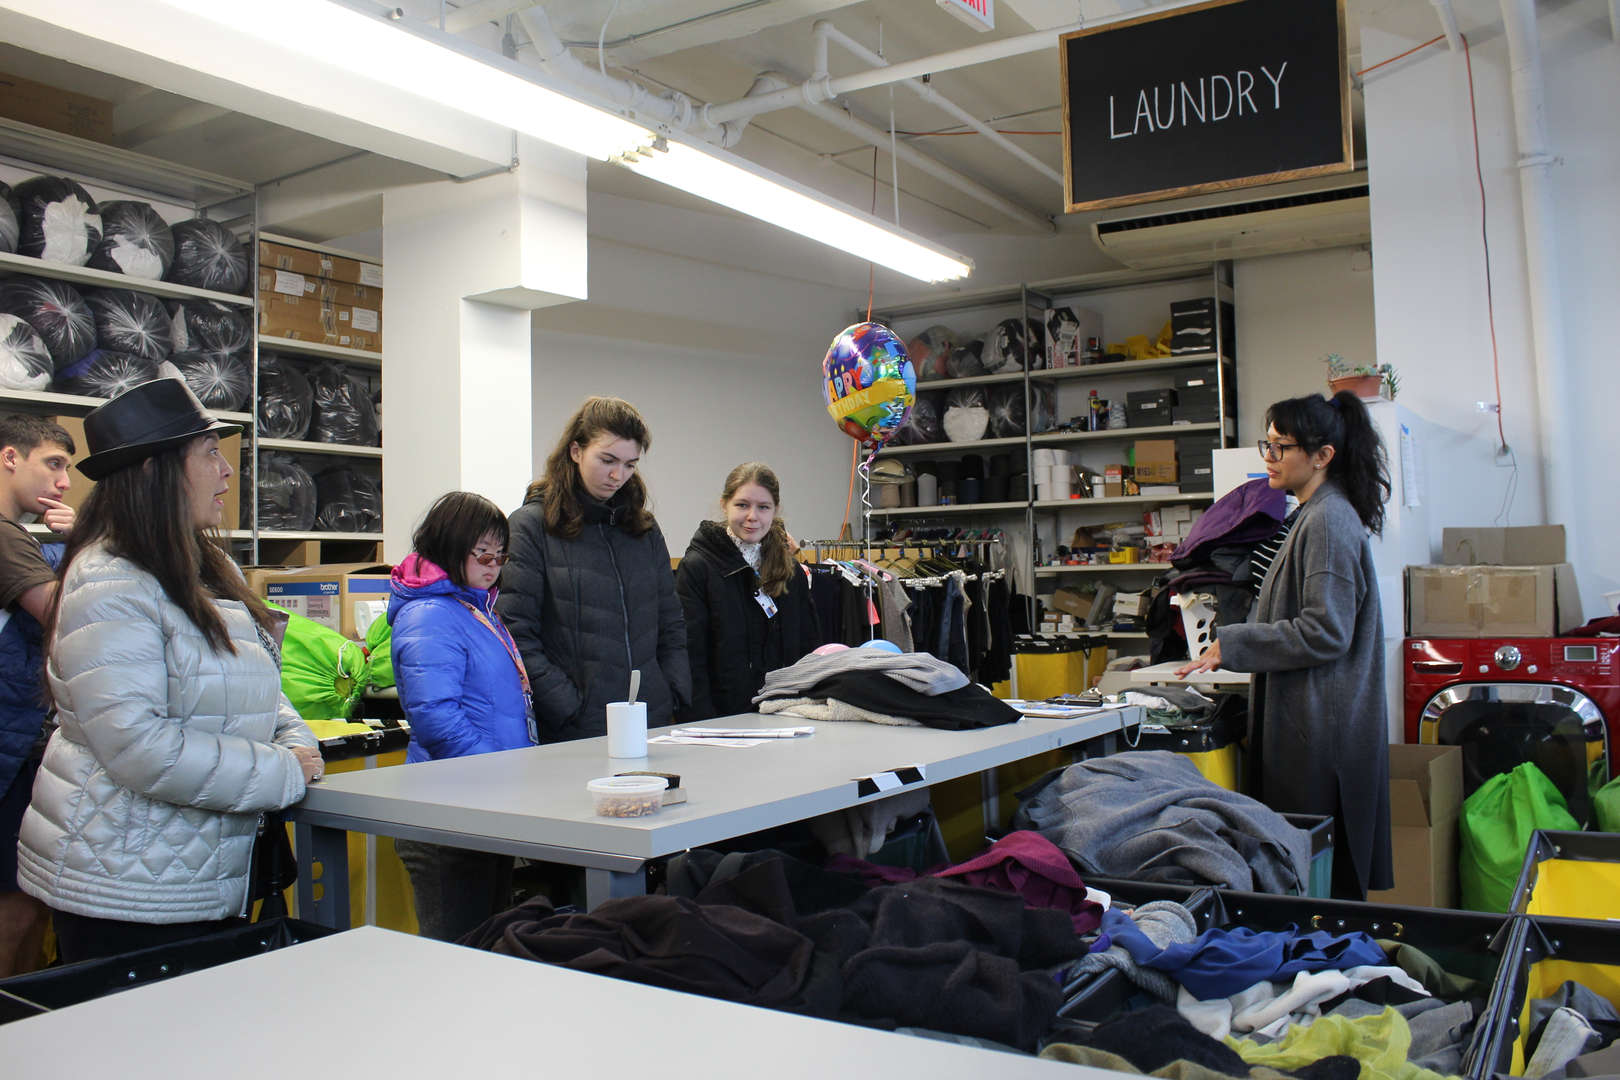 Woman talks to students amongst piles of clothing